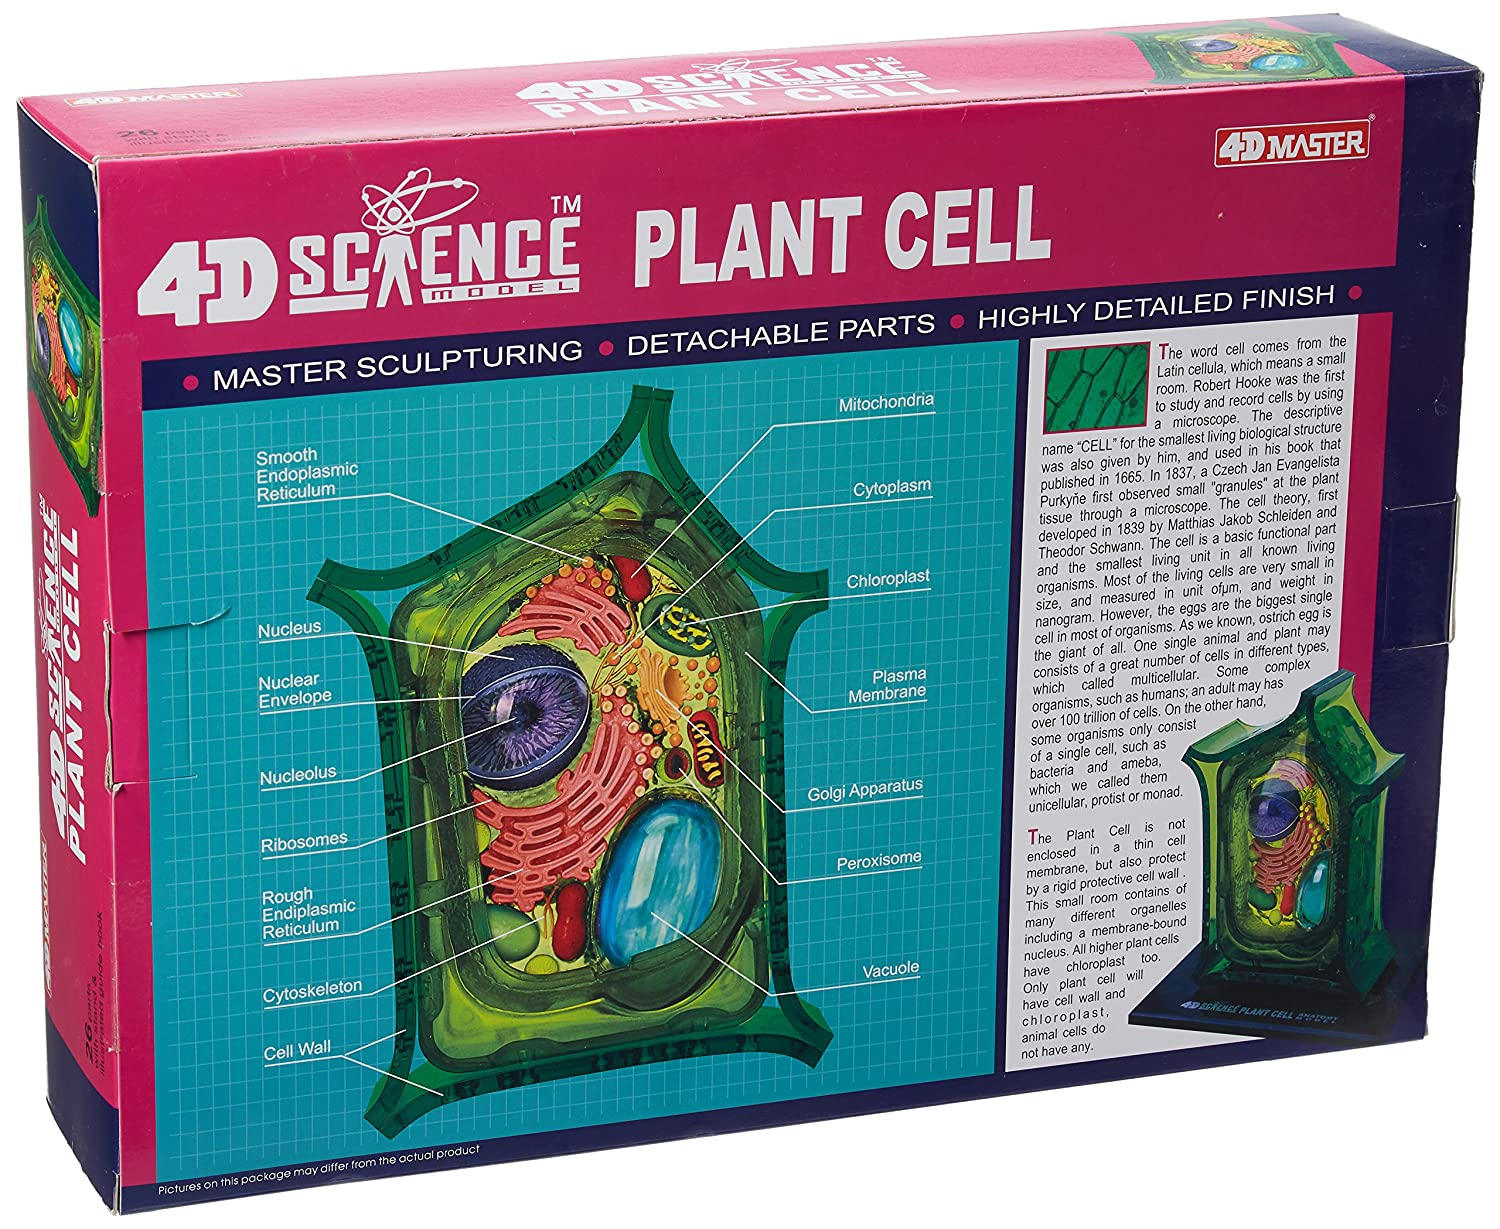 Famemaster 4d Science Plant Cell Anatomy Model Toys Games Diagram Labeled 3d Wallcell